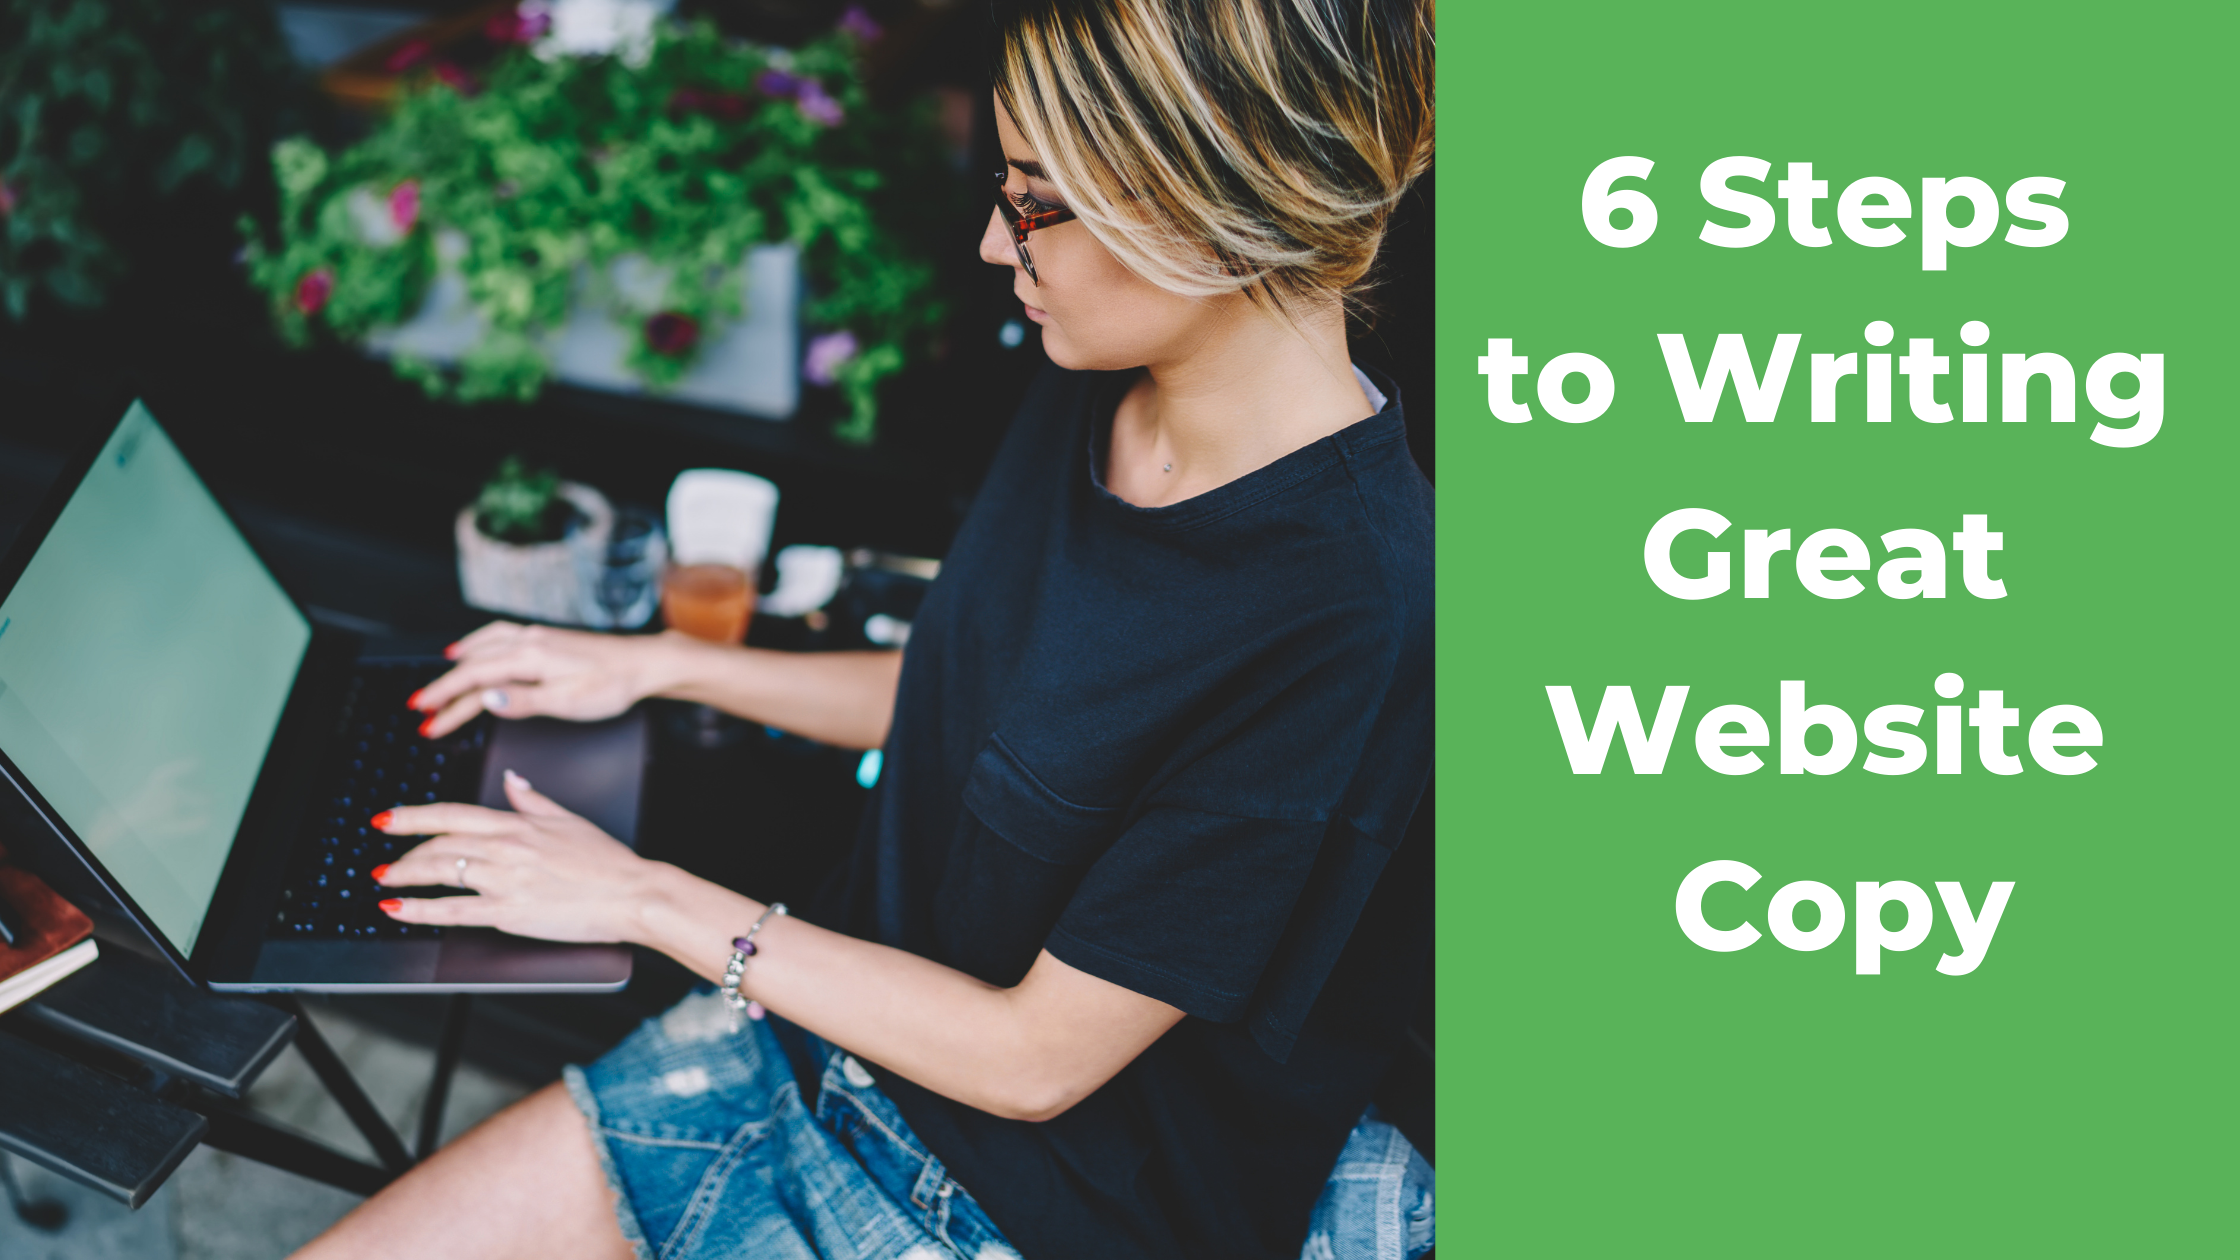 Six Steps to Writing Great Website Copy